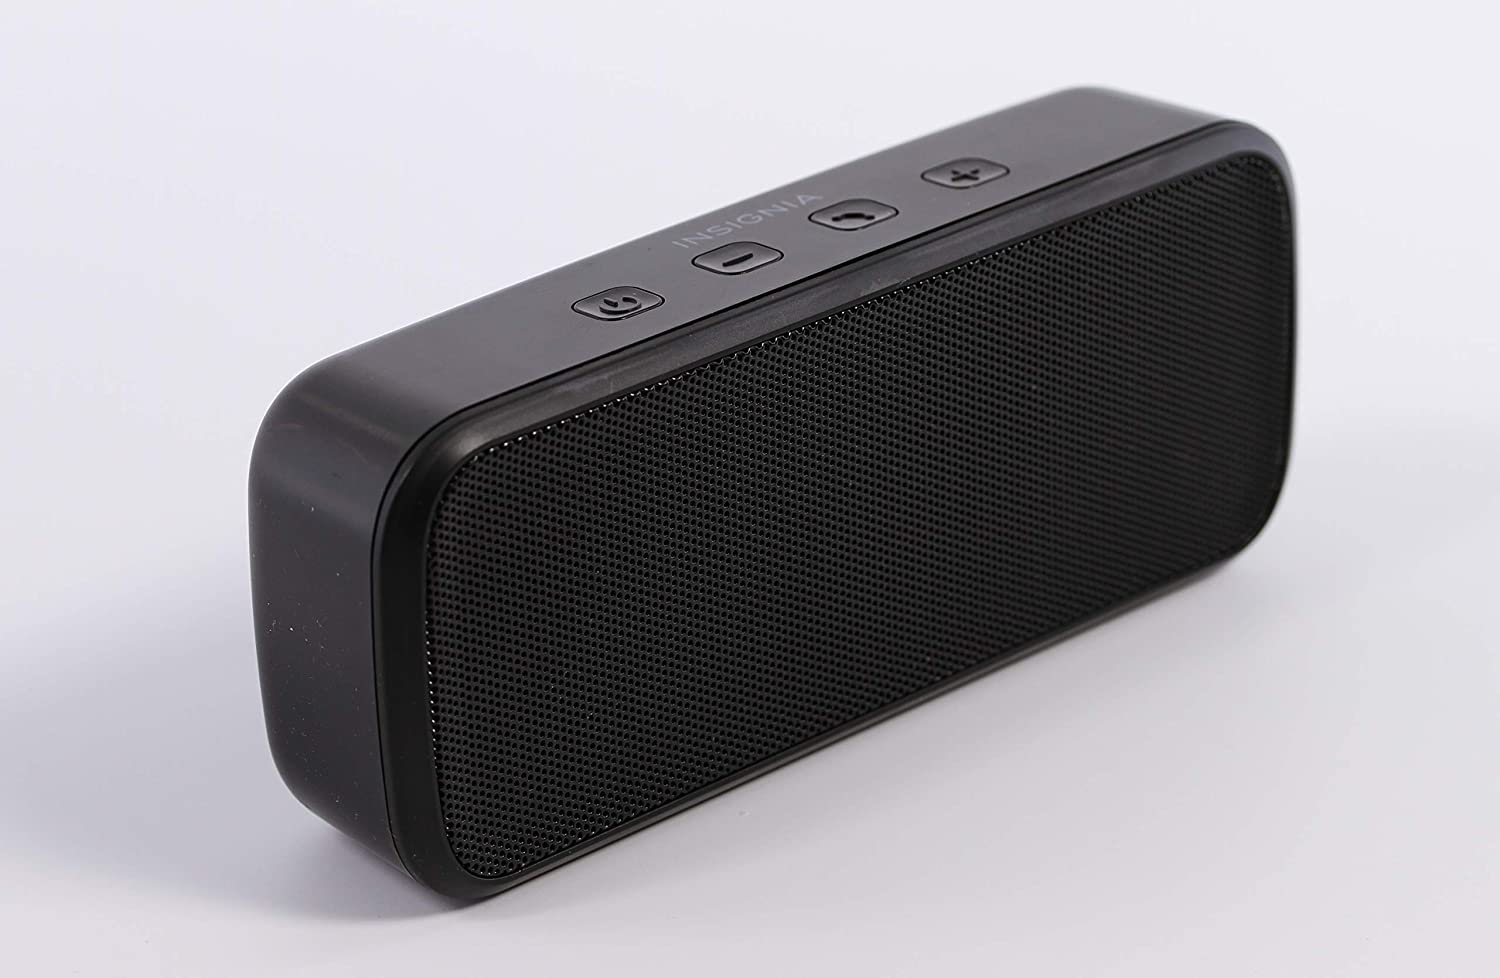 Insignia Portable Bluetooth Stereo Speaker (NS-CSPBTHOL8-BK) Black - New